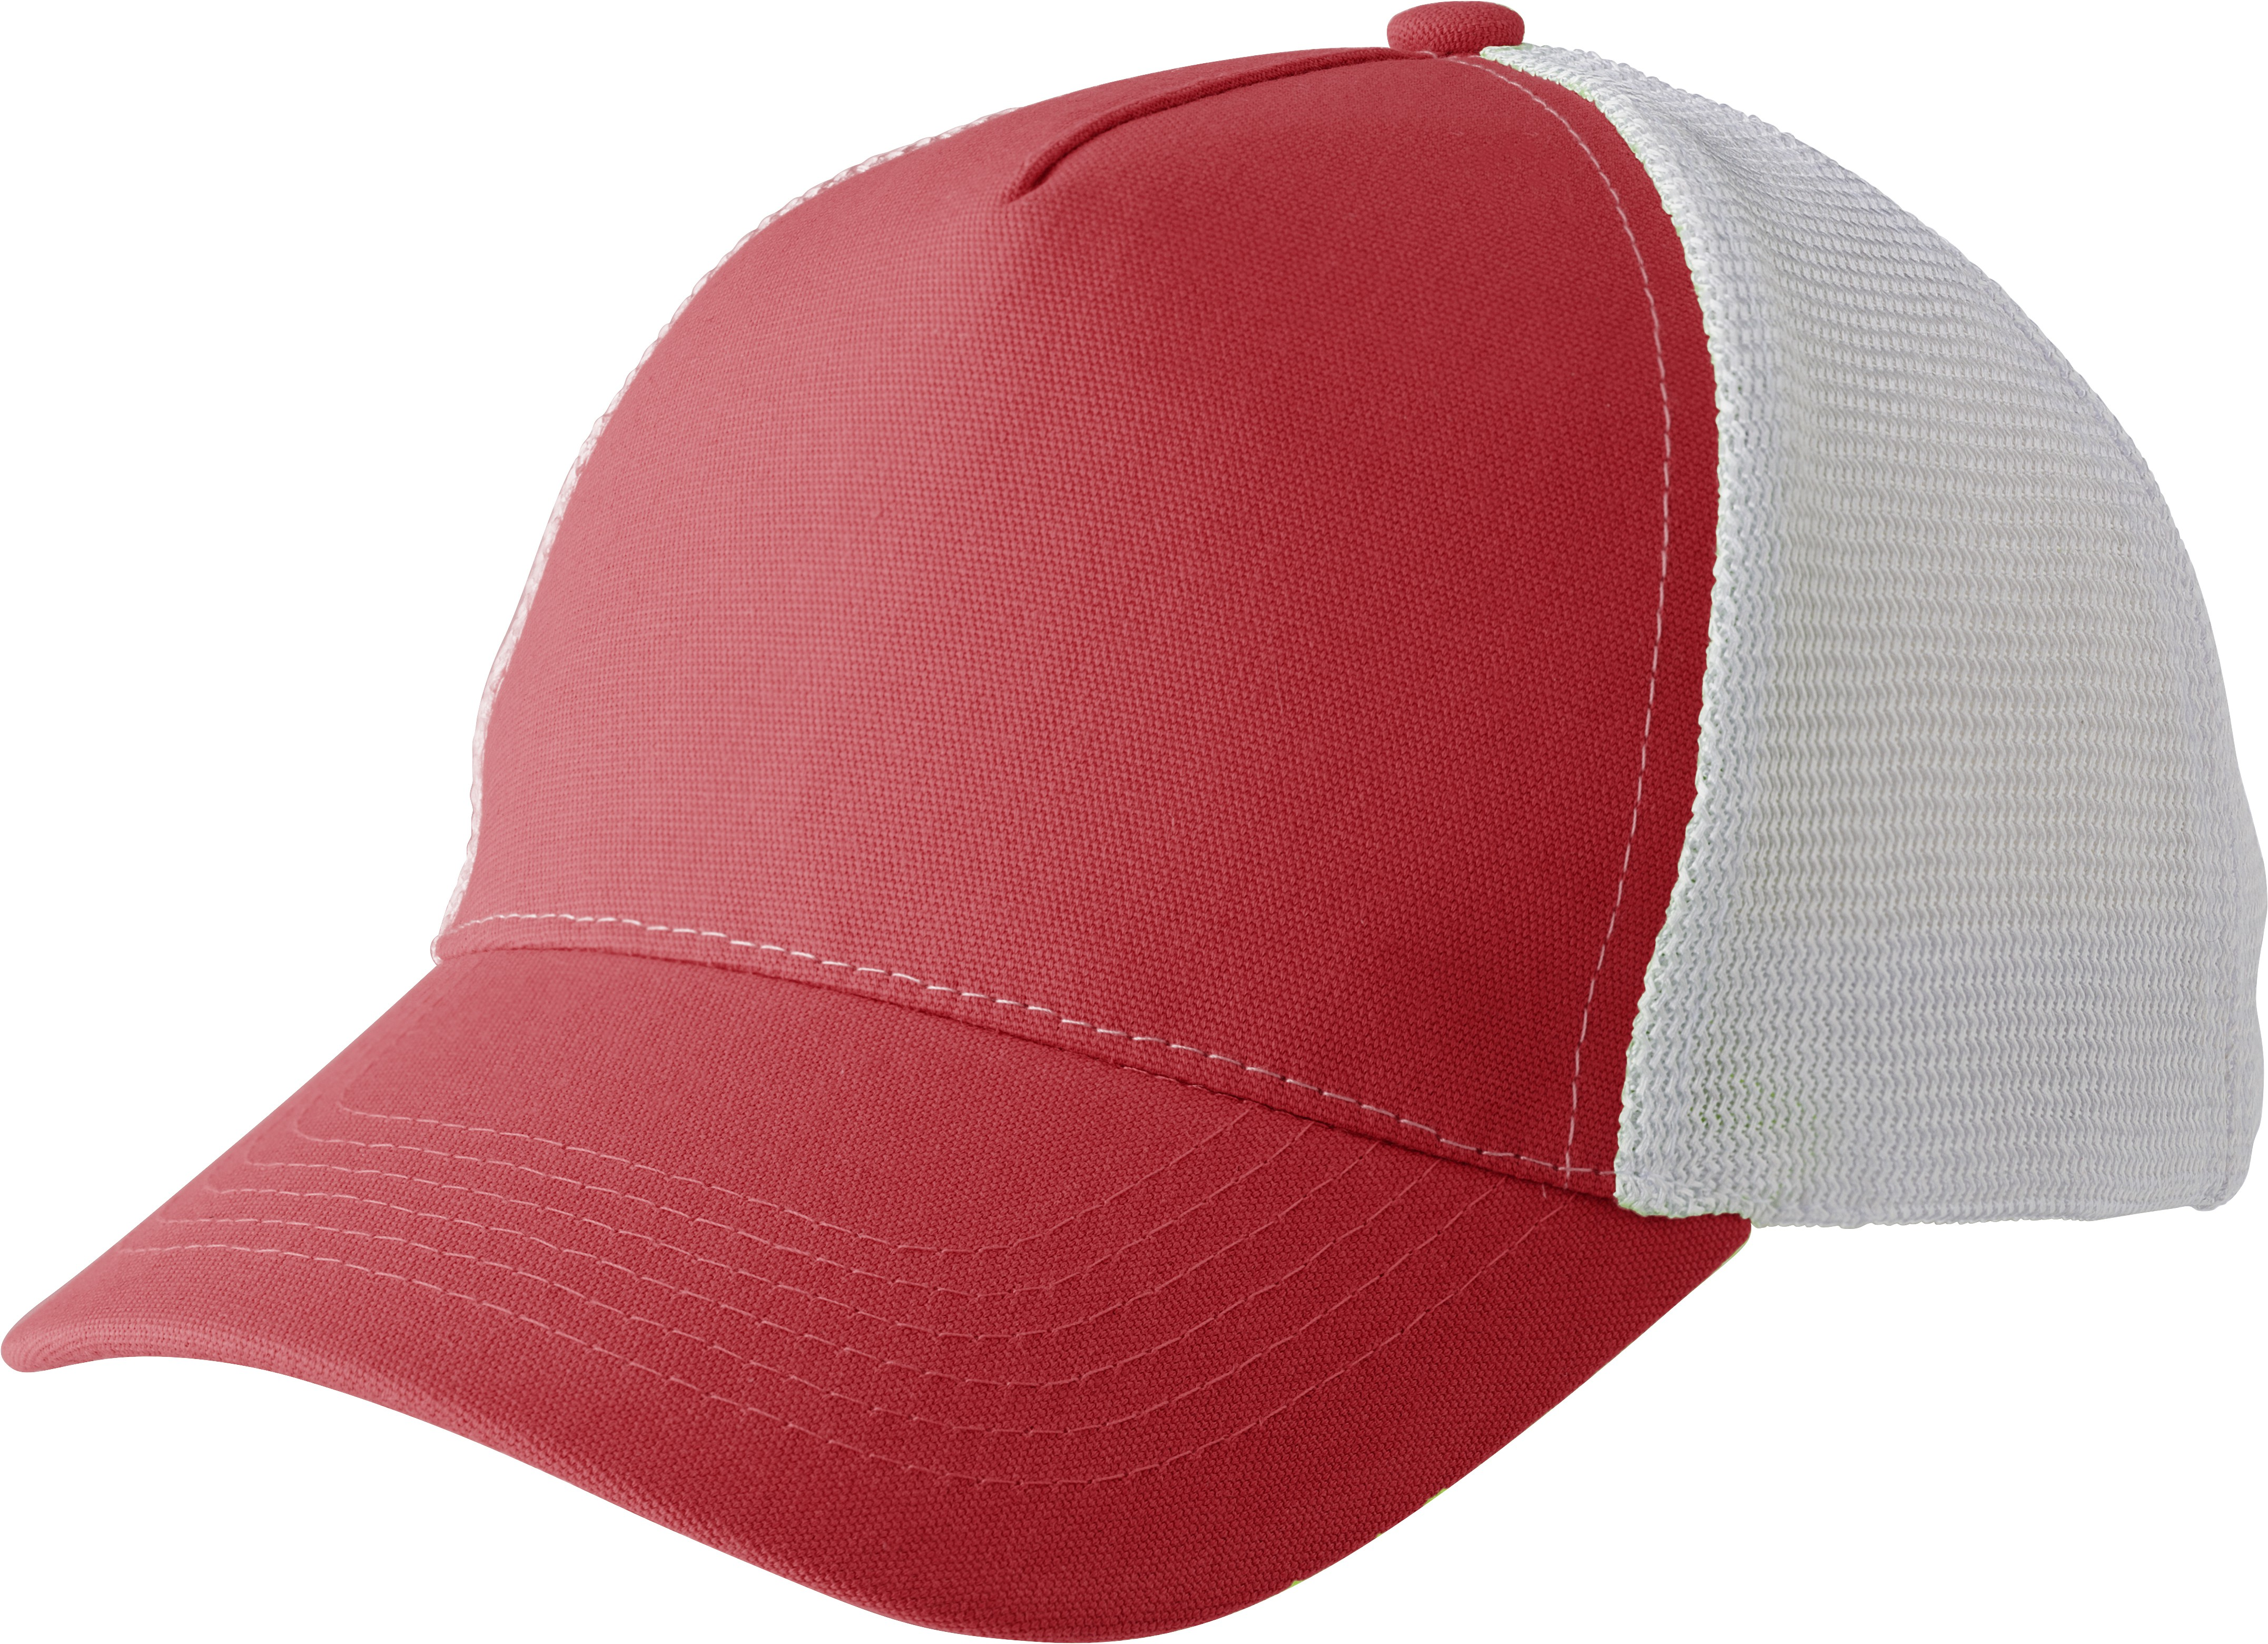 321ac05de7c Polyester baseball cap with five panels